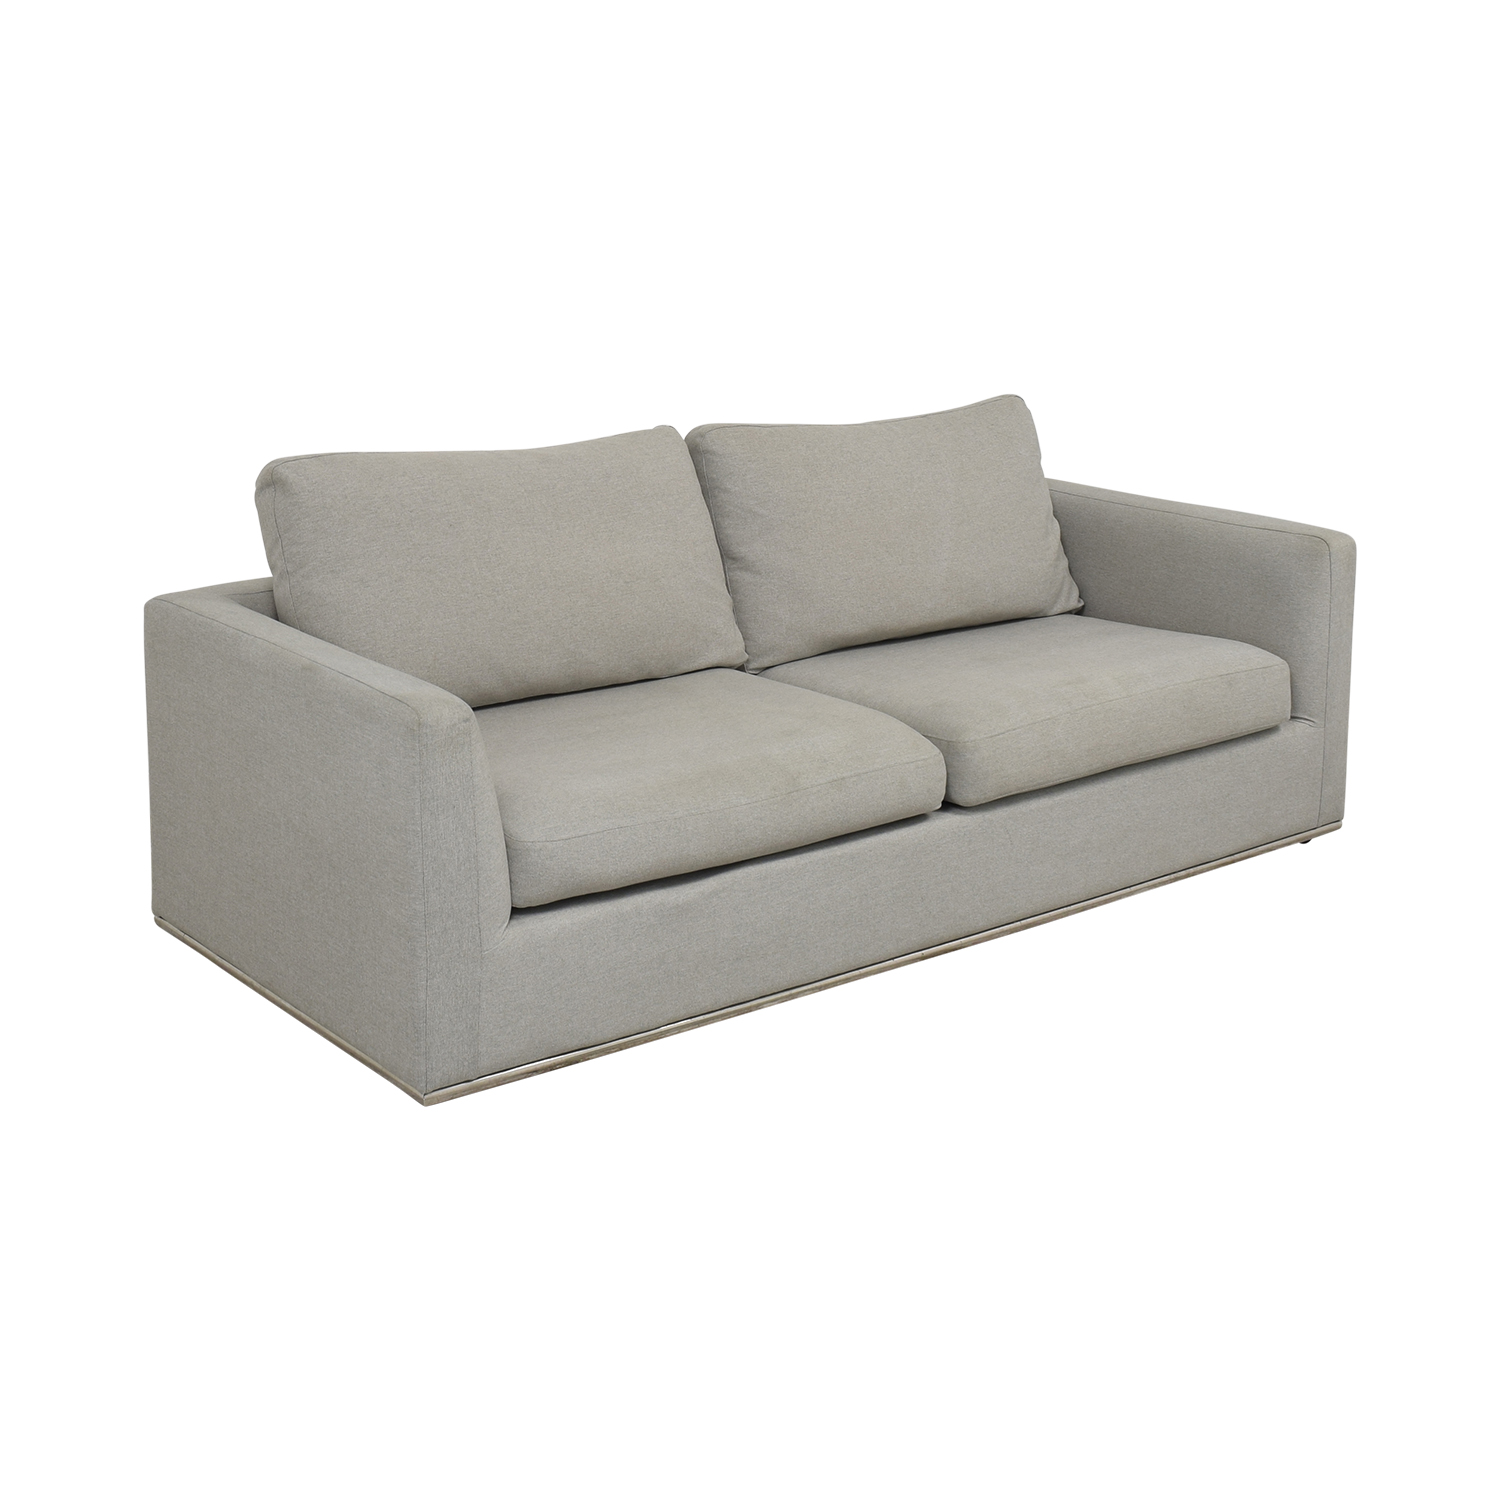 shop Modani Modern Two Seater Sofa Modani Classic Sofas